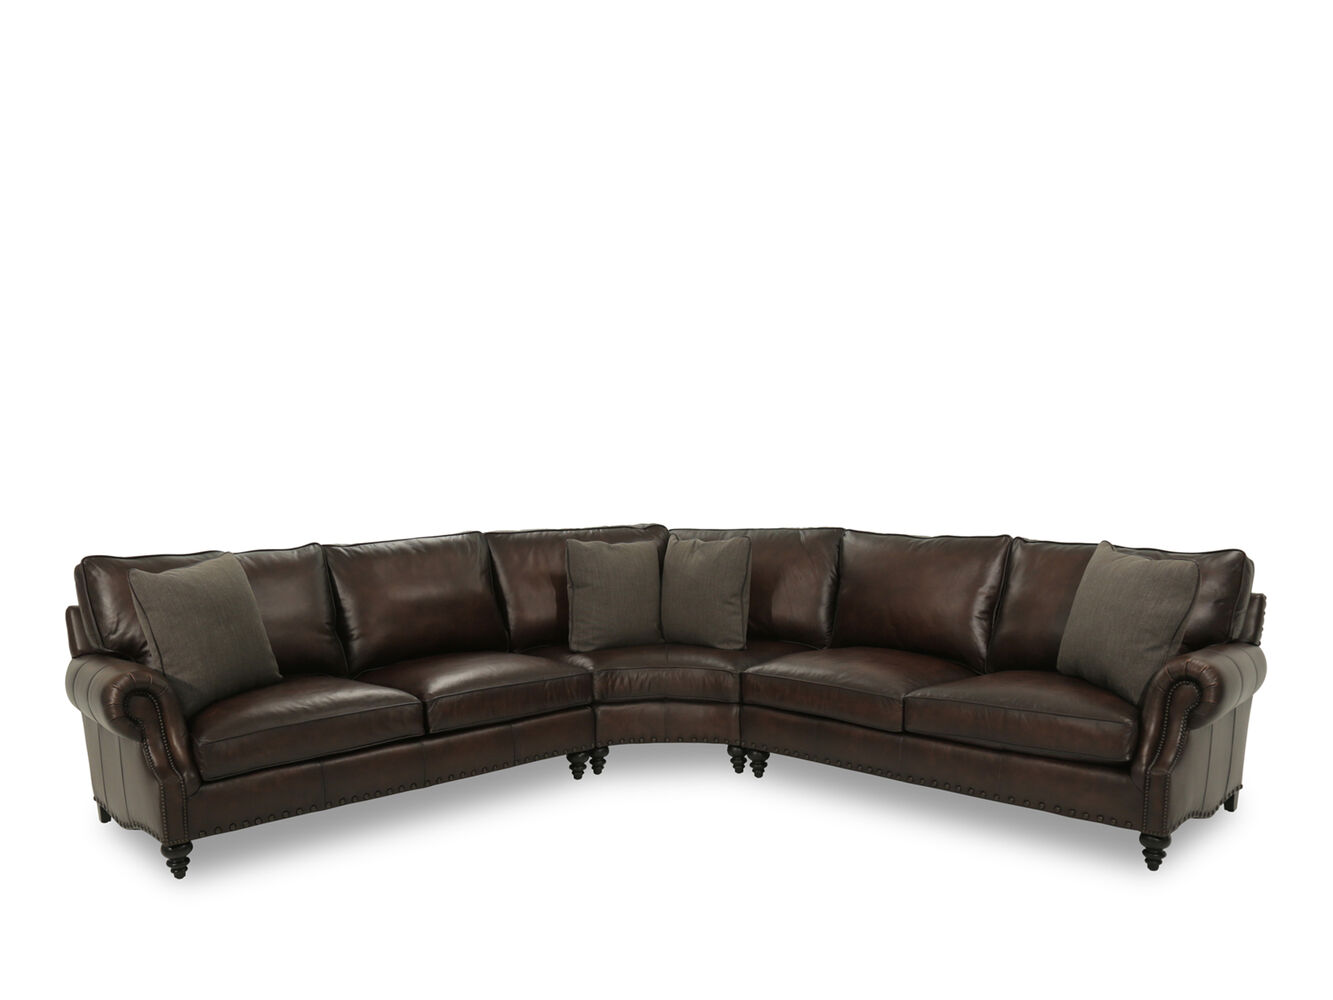 Bernhardt Fleming Leather Sectional Sofa | Mathis Brothers ...